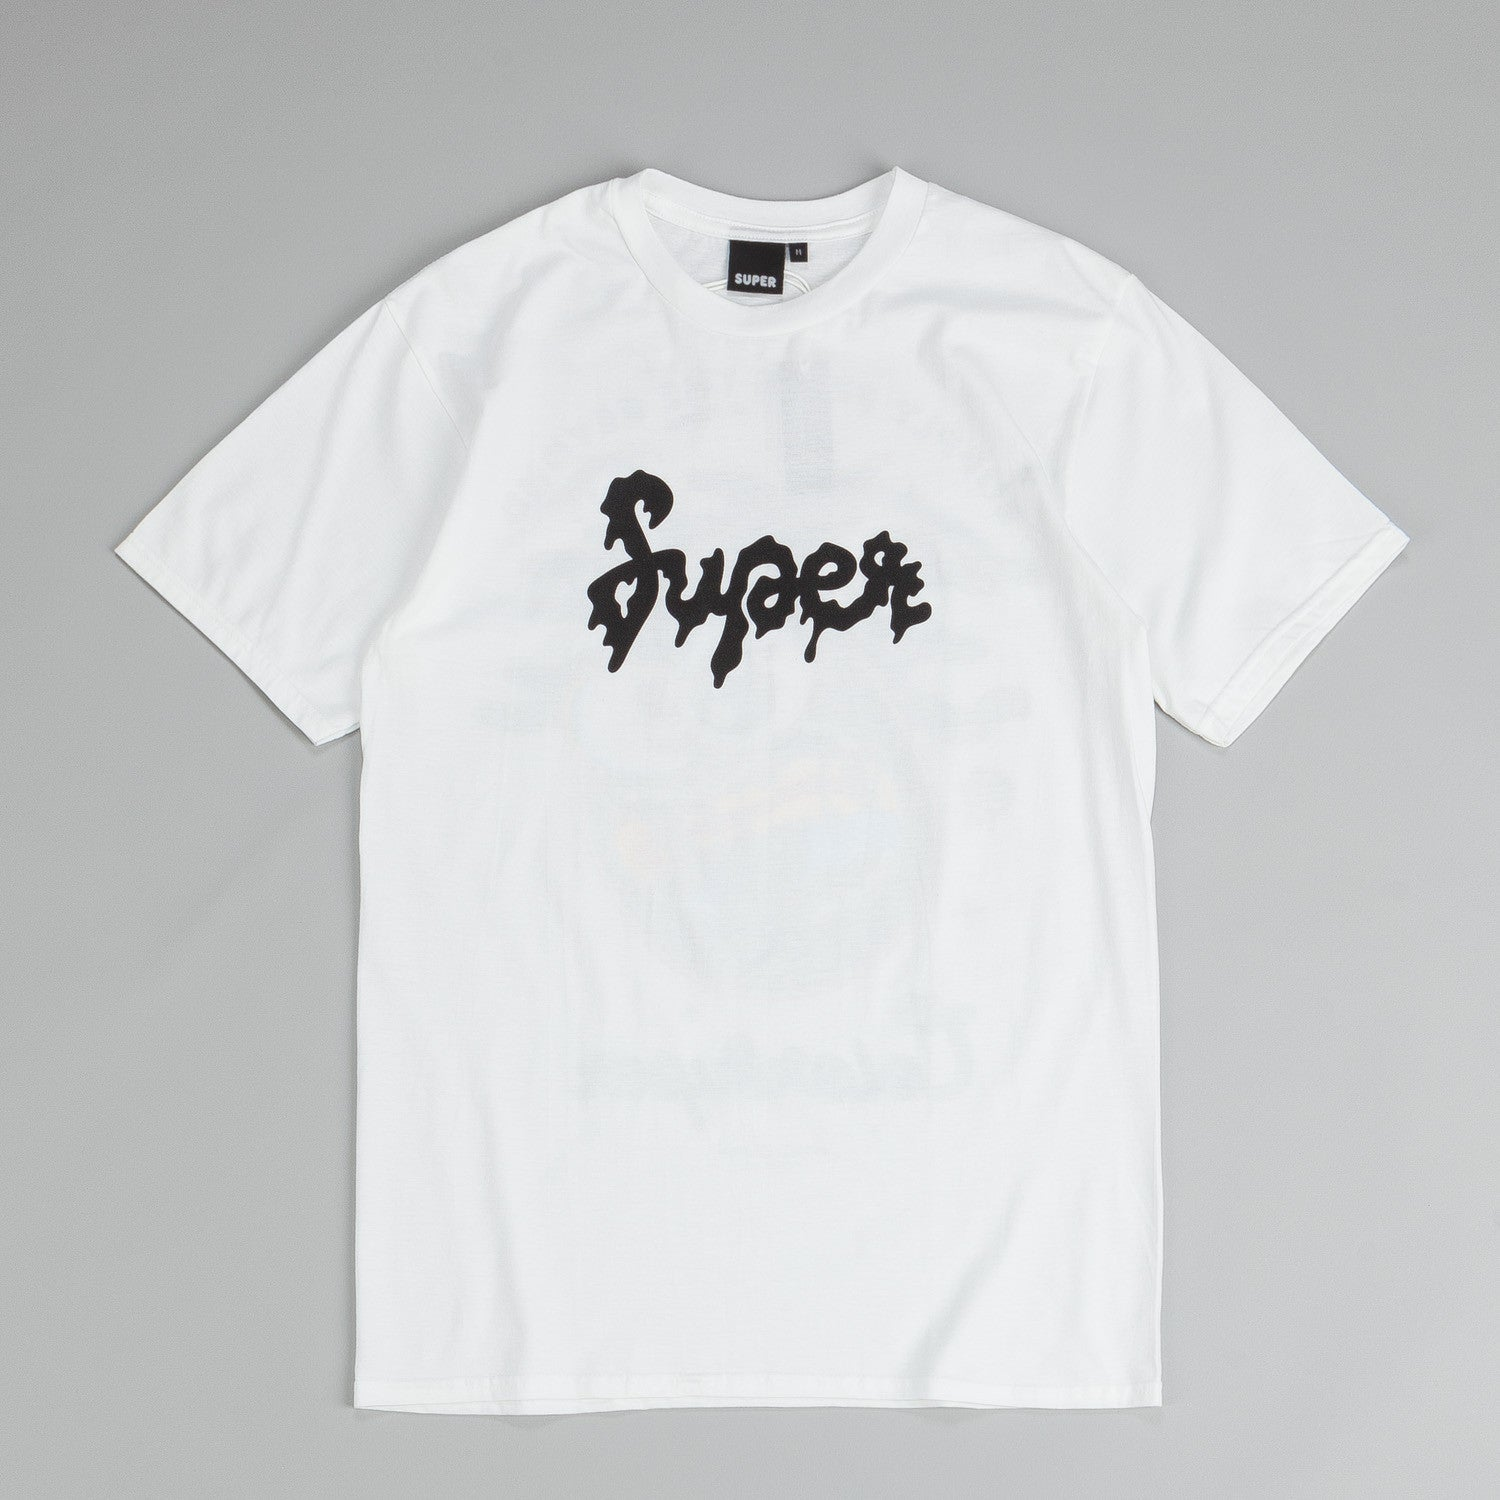 Colorsuper SFTB T Shirt White